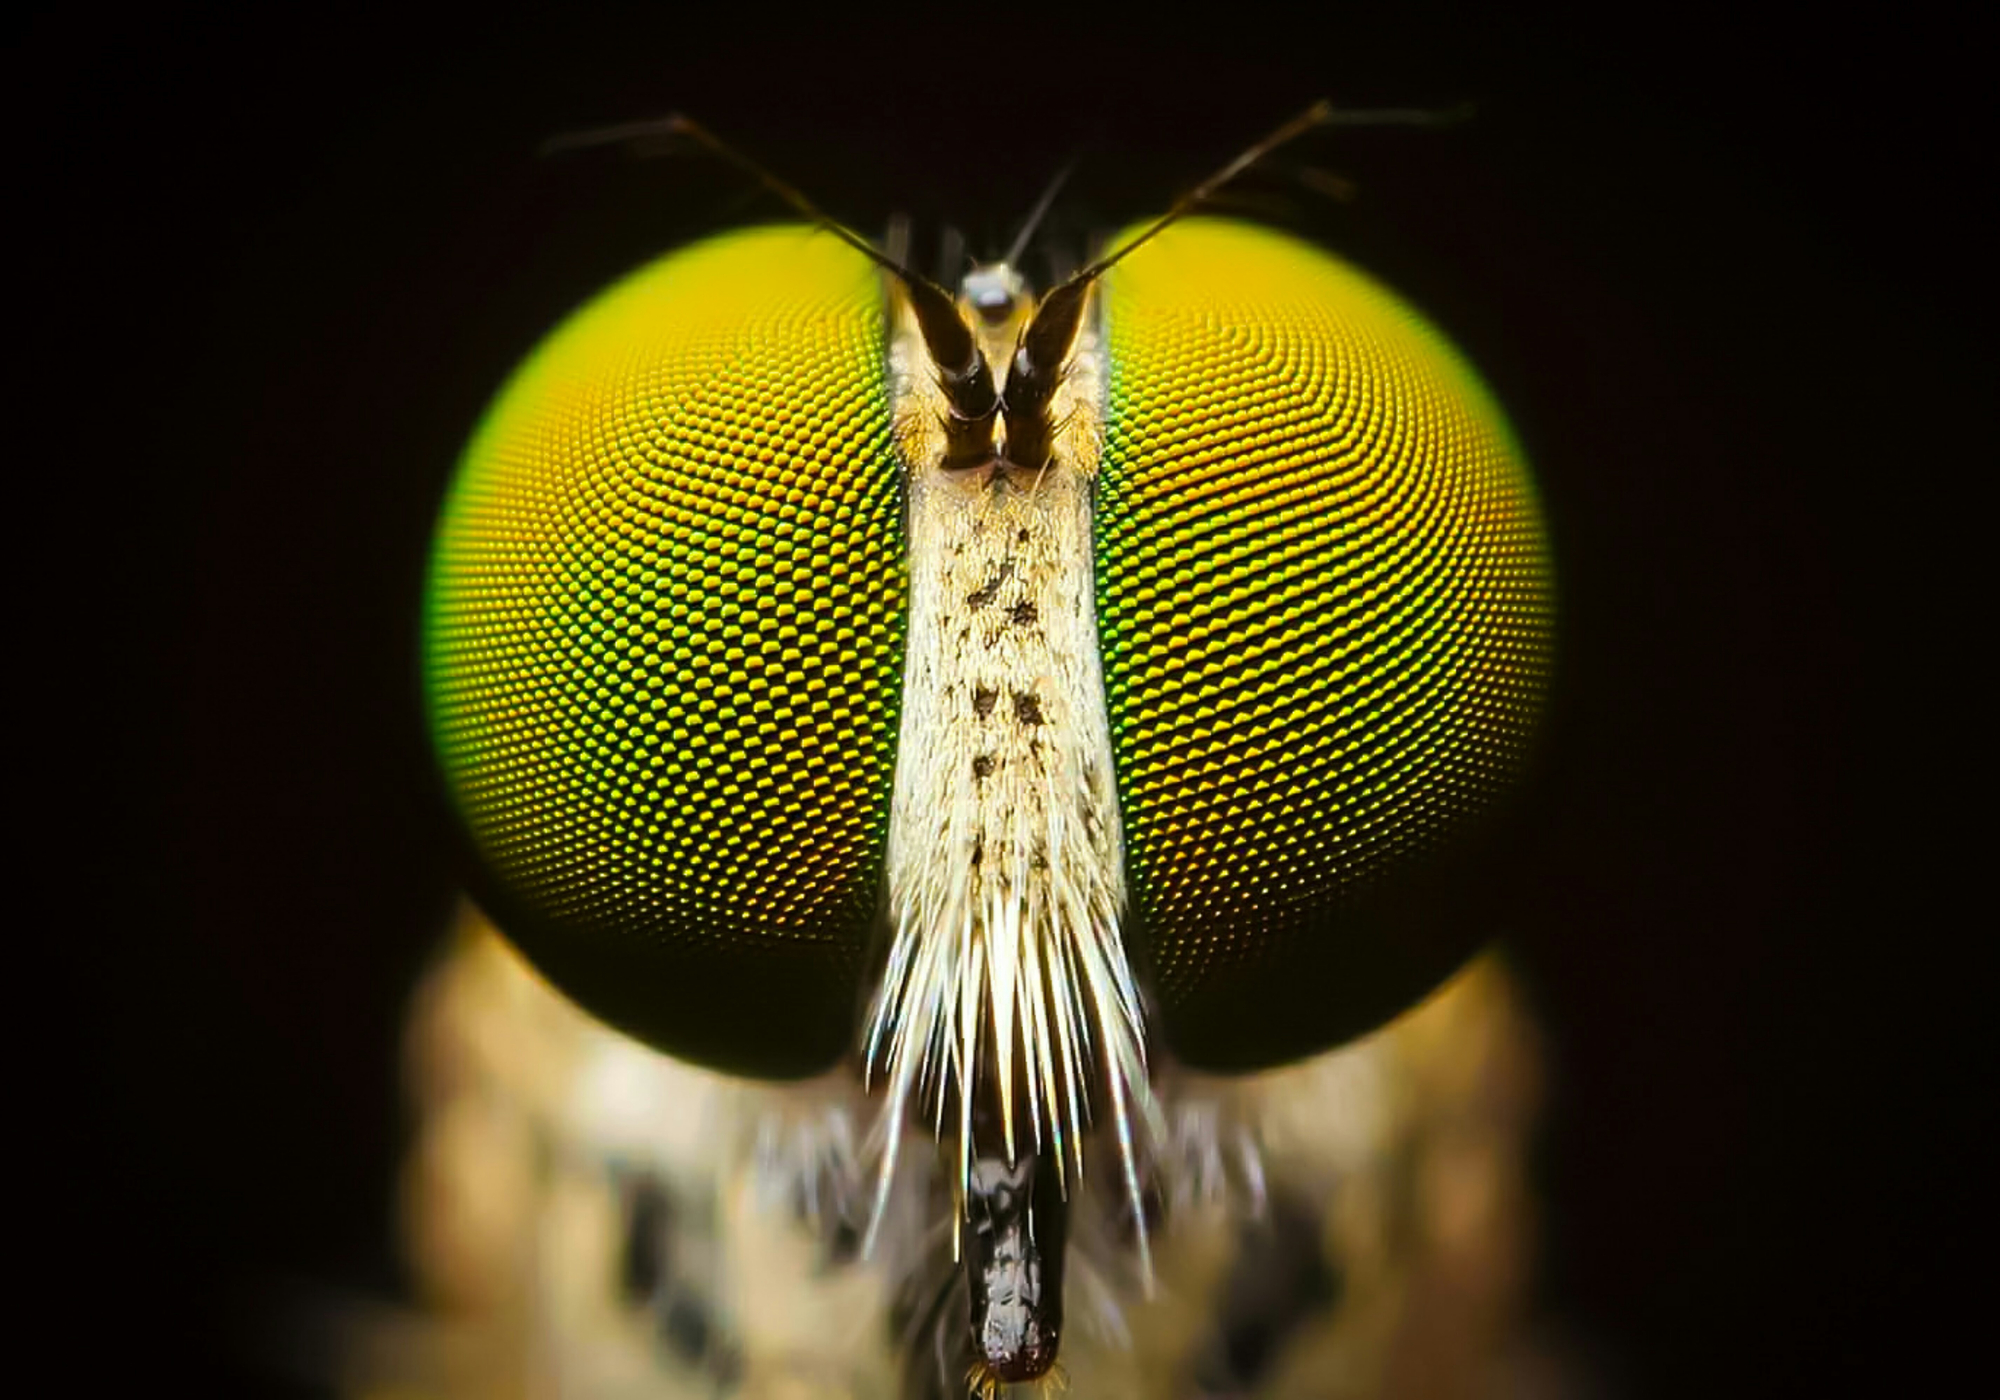 Insect-inspired silicon brain startup Opteran secures £2.1m funding